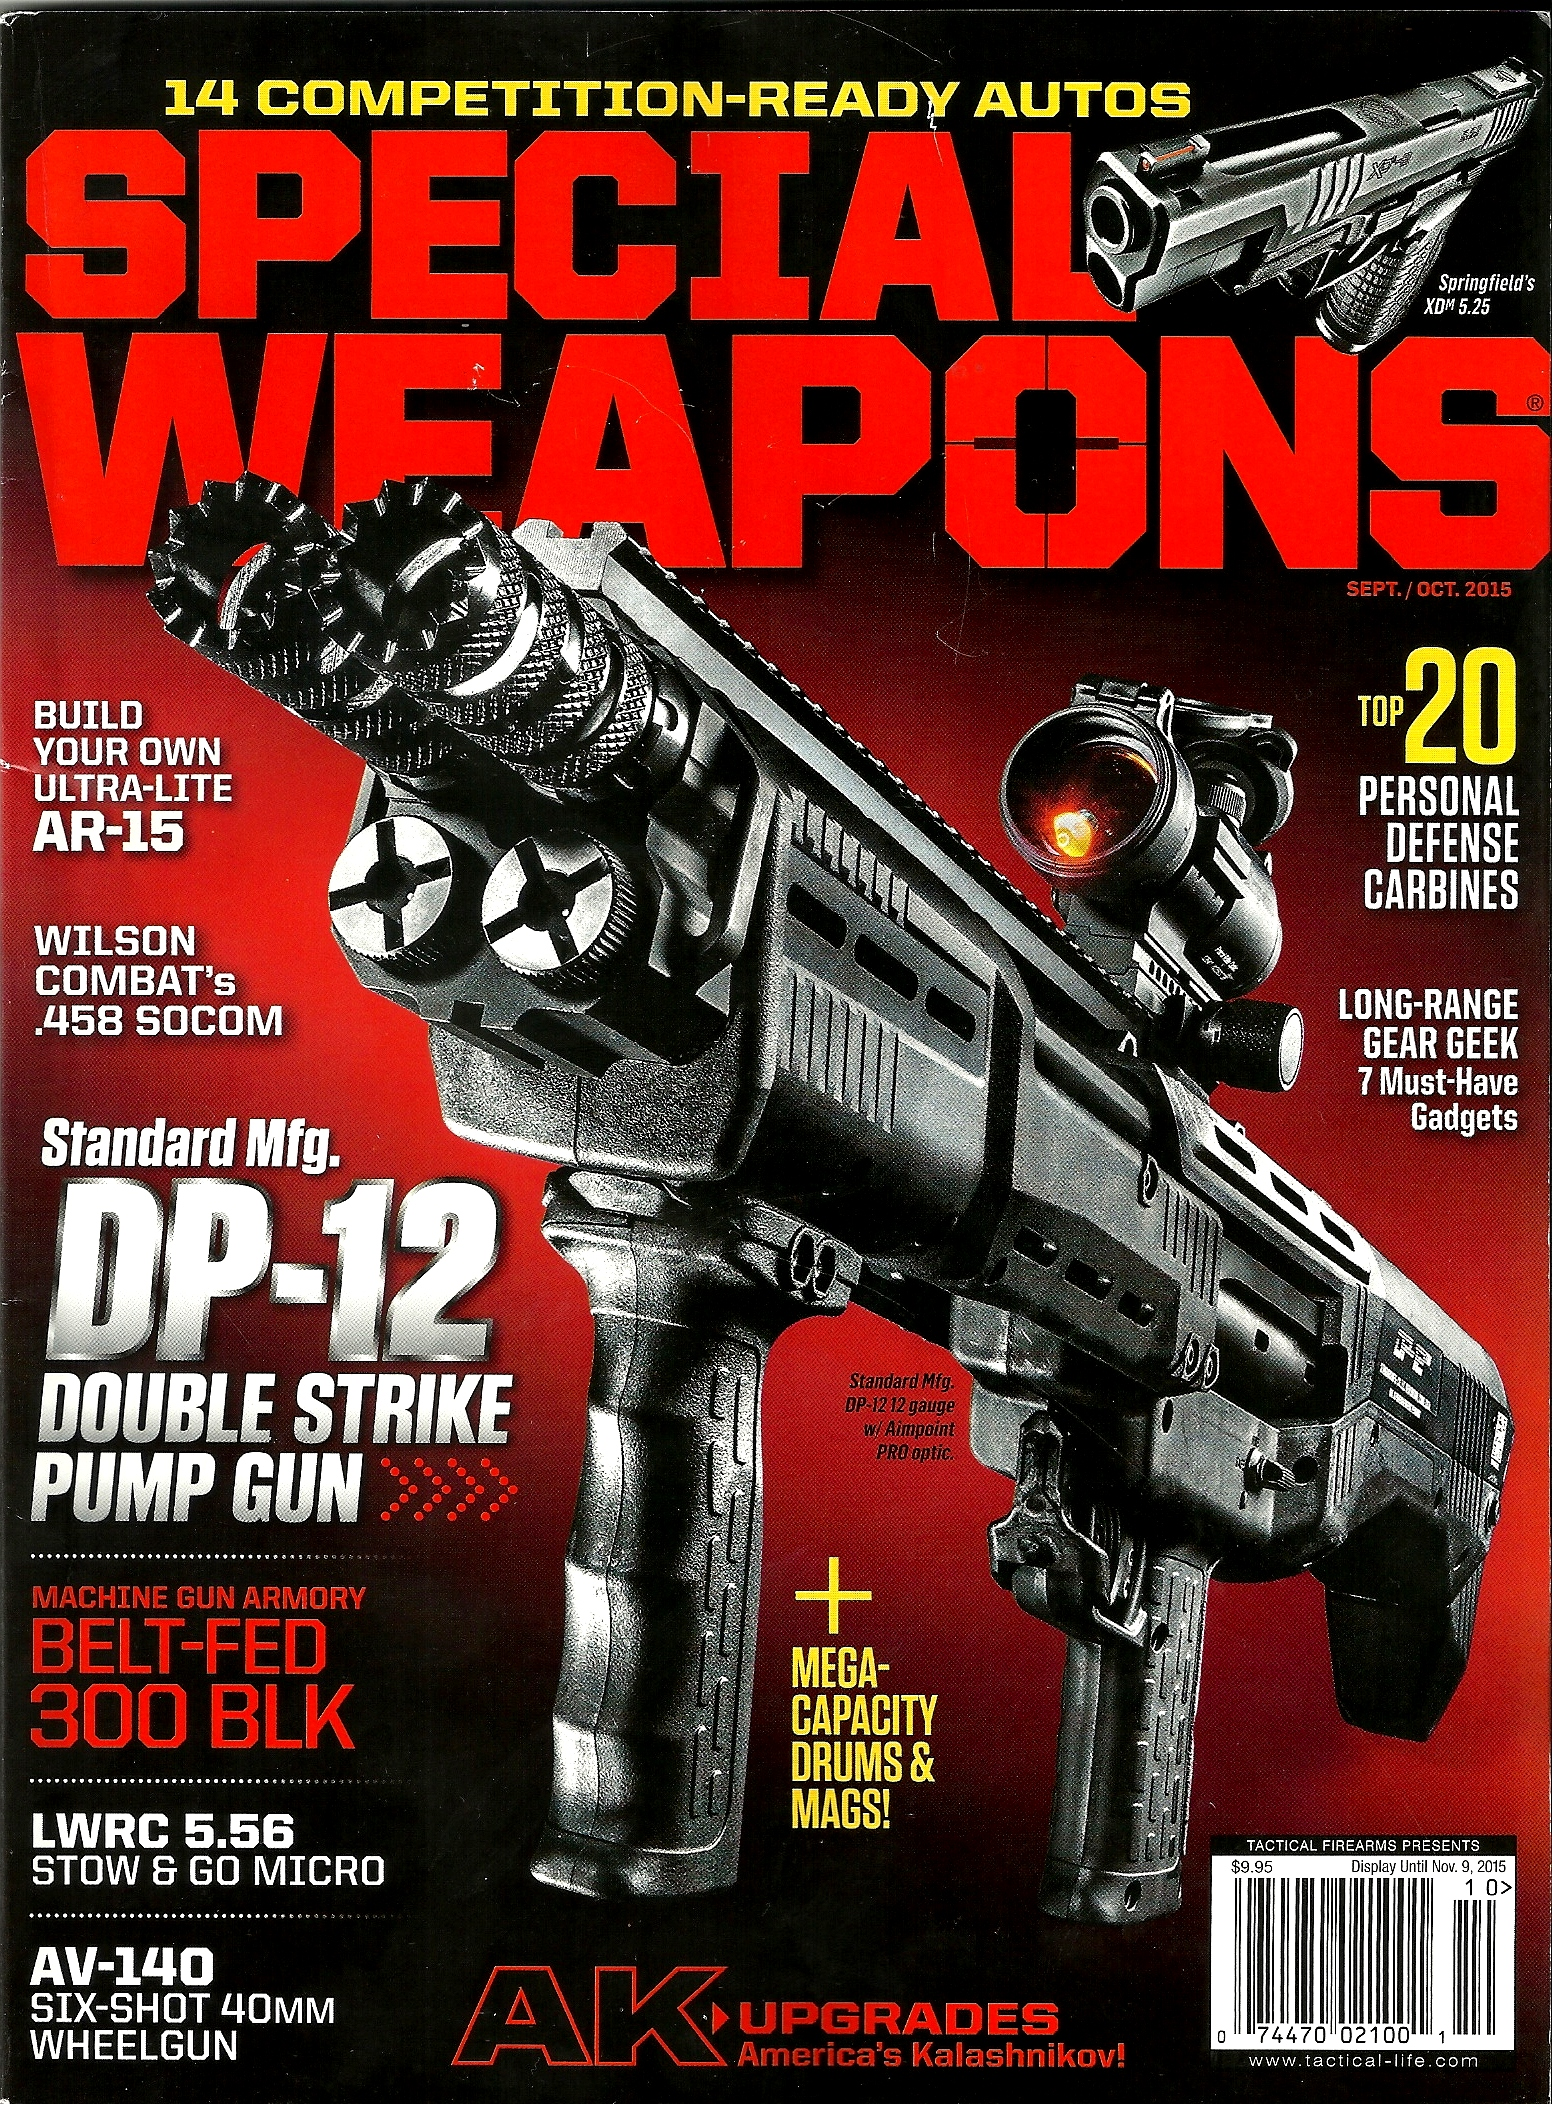 dp-12-special-weapons-front-cover.jpg